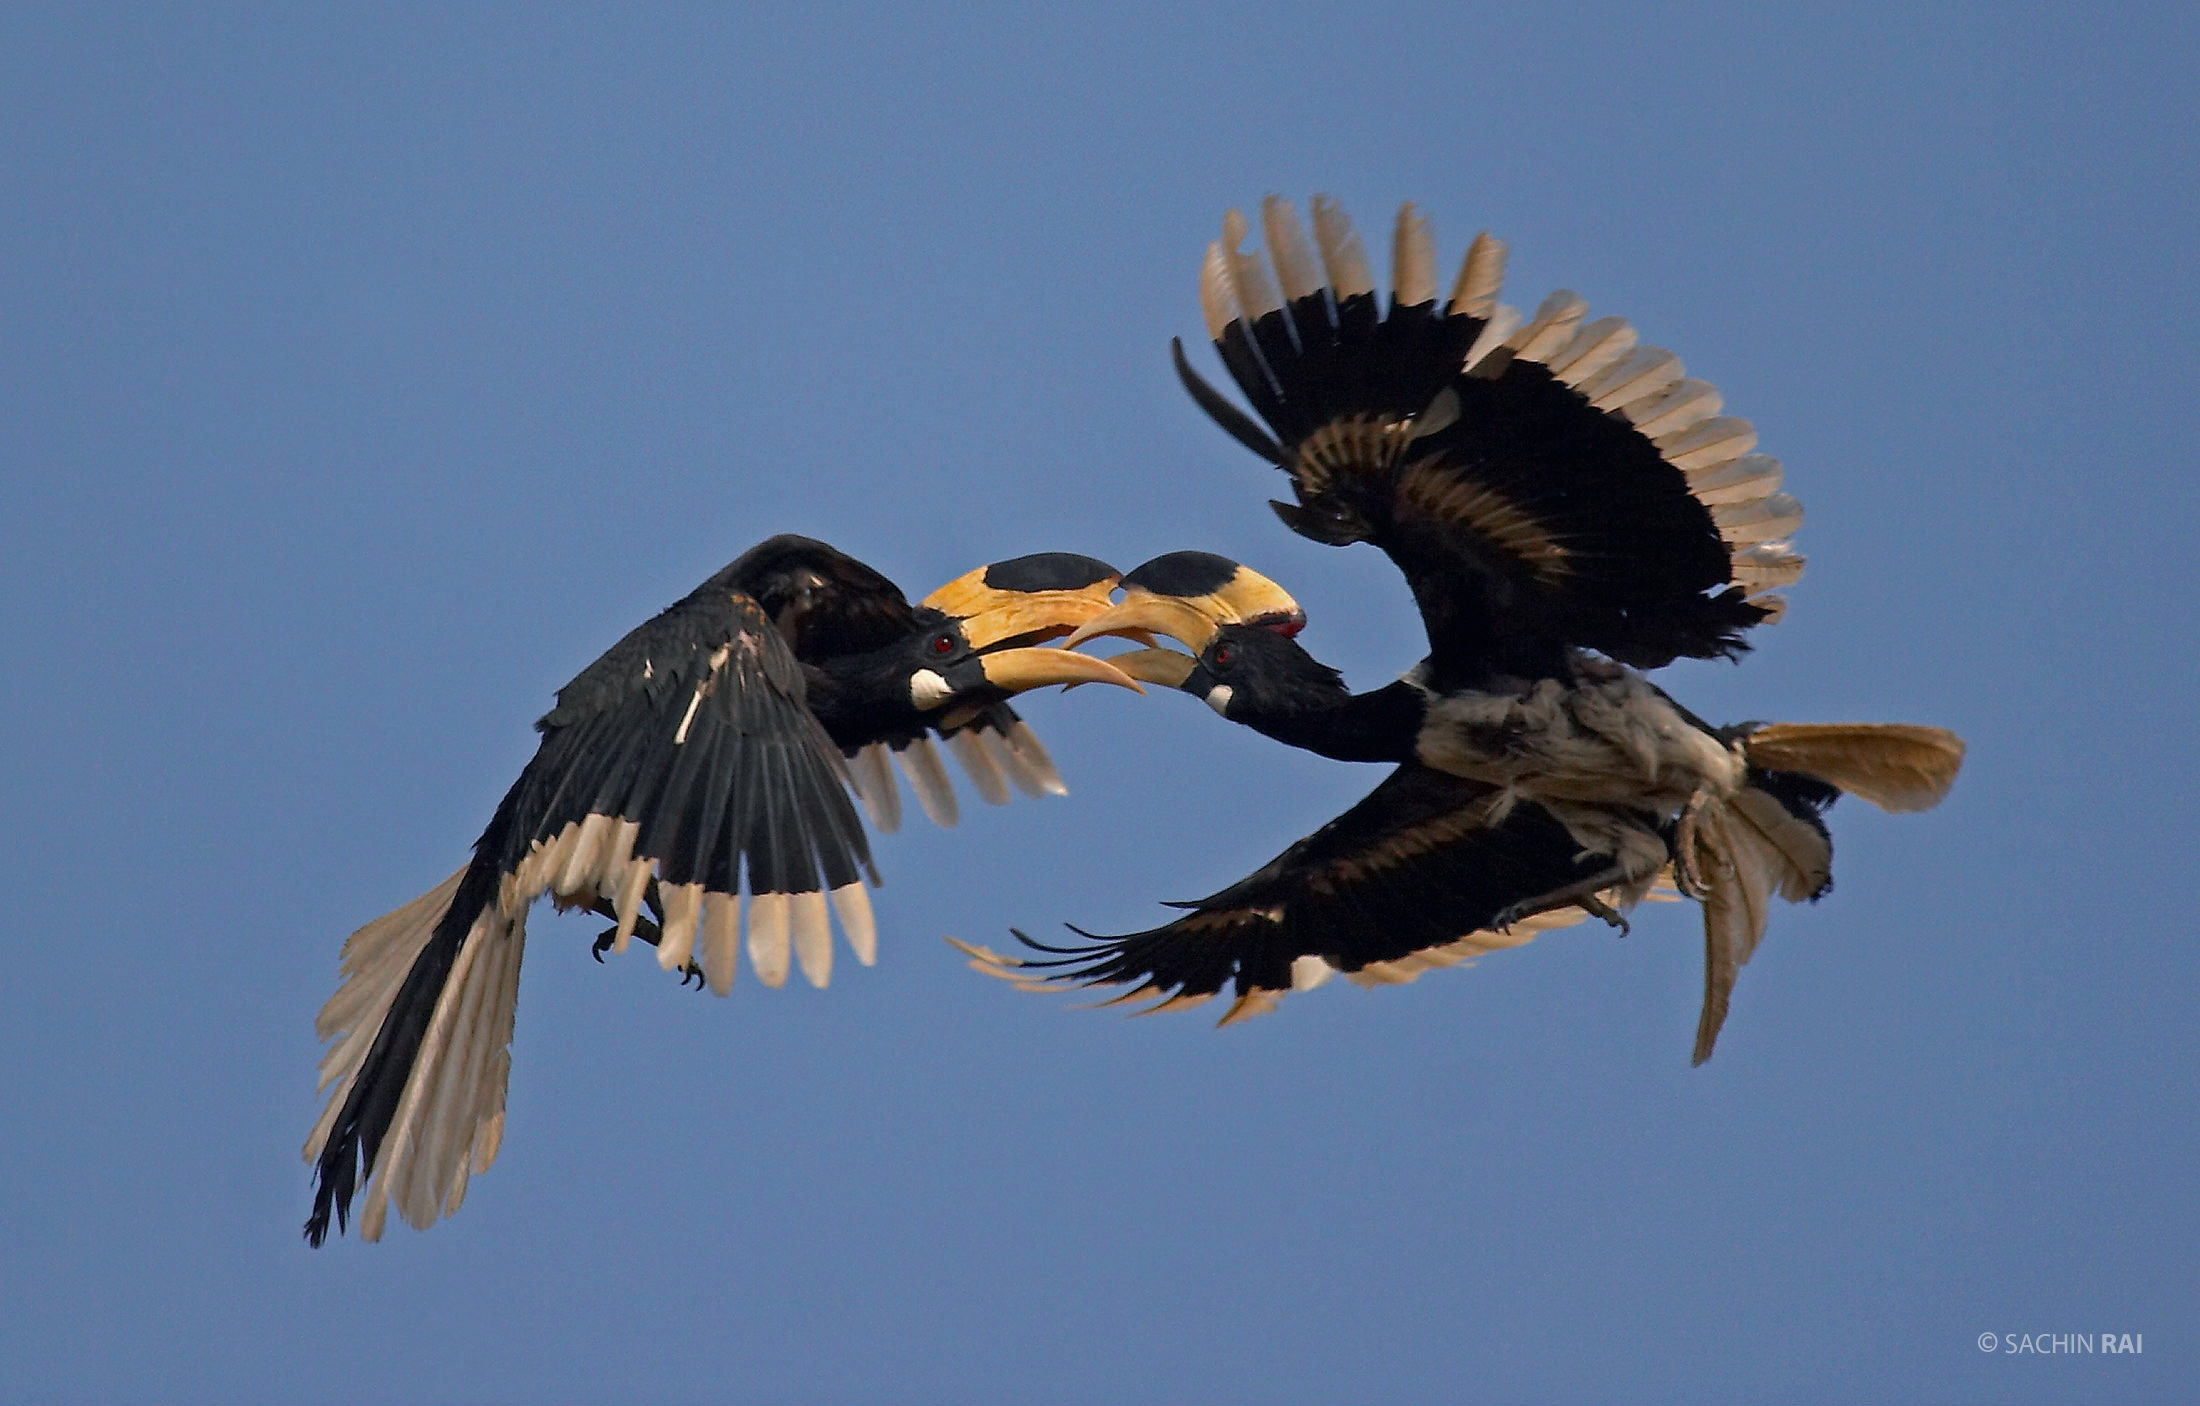 Two male Malabar pied hornbills locking their beaks mid air in Dandeli, Karnataka, India.